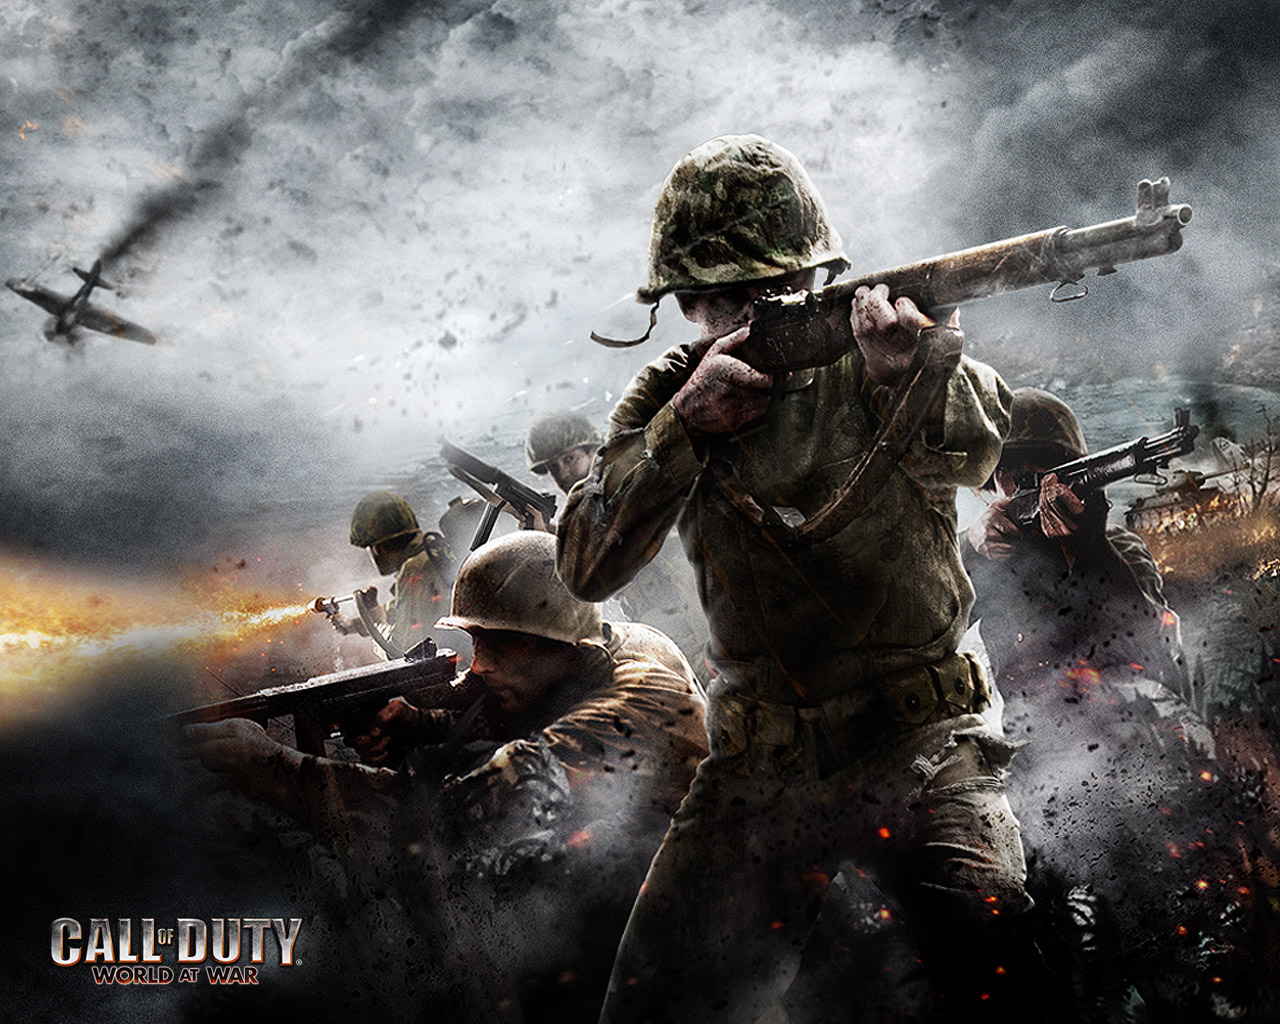 Xbox one wallpaper 1600x1200 68054 - Call of duty world war 2 background ...